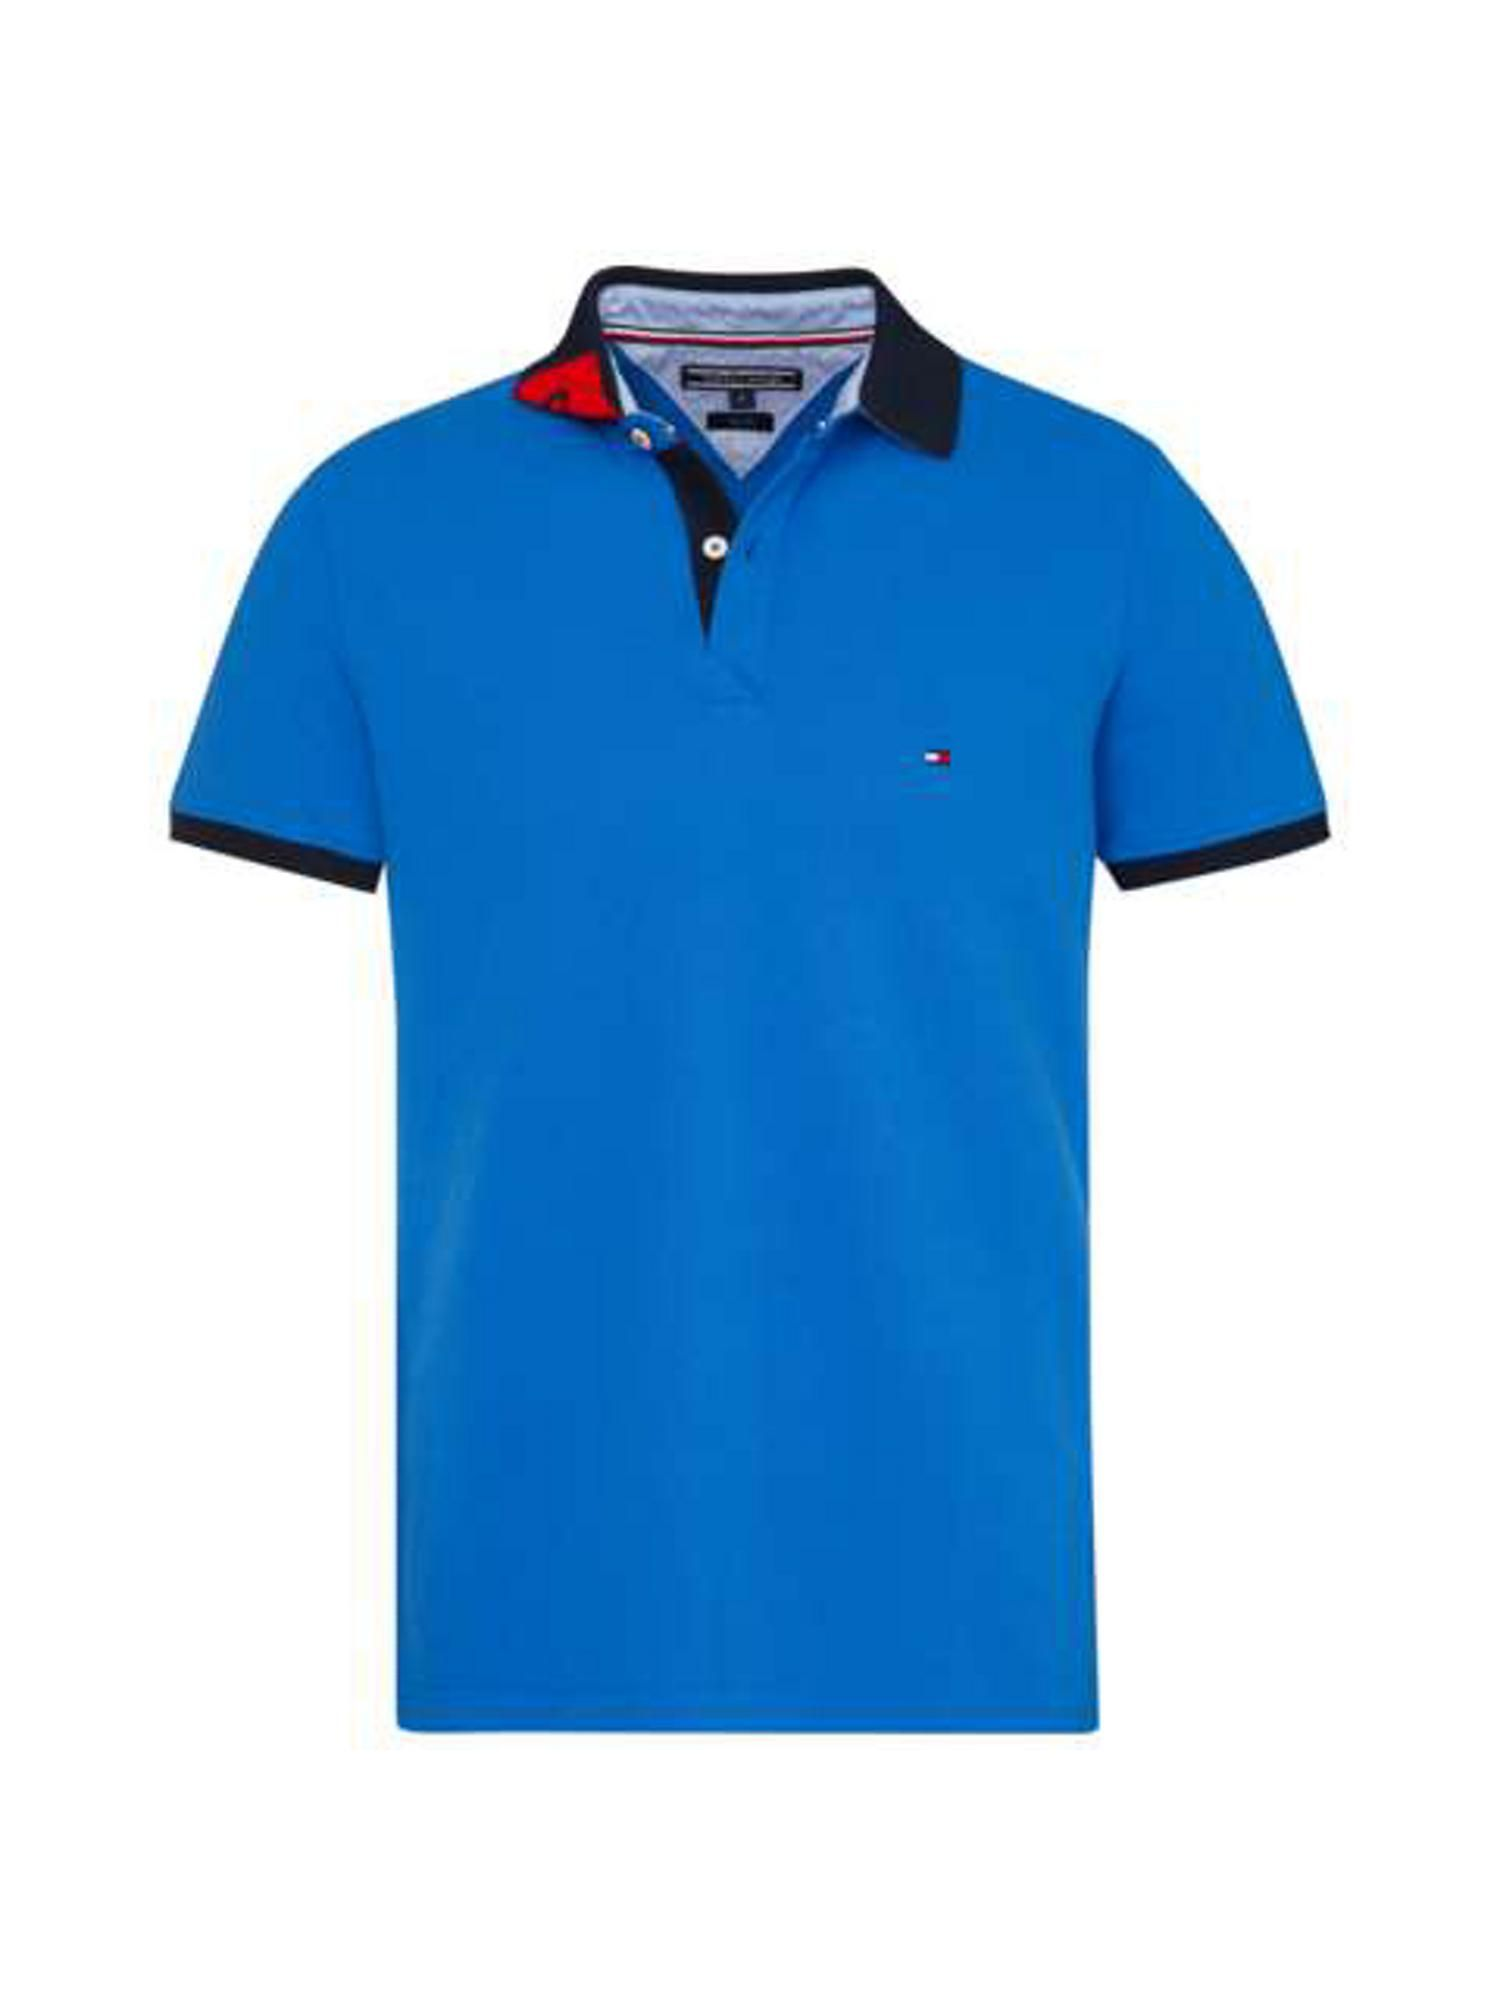 Buy Your Tommy Hilfiger Tommy Jacquard Polo Top Online Now At House Of Fraser Why Not Buy And Collect In S Mens Polo Shirts Tommy Hilfiger